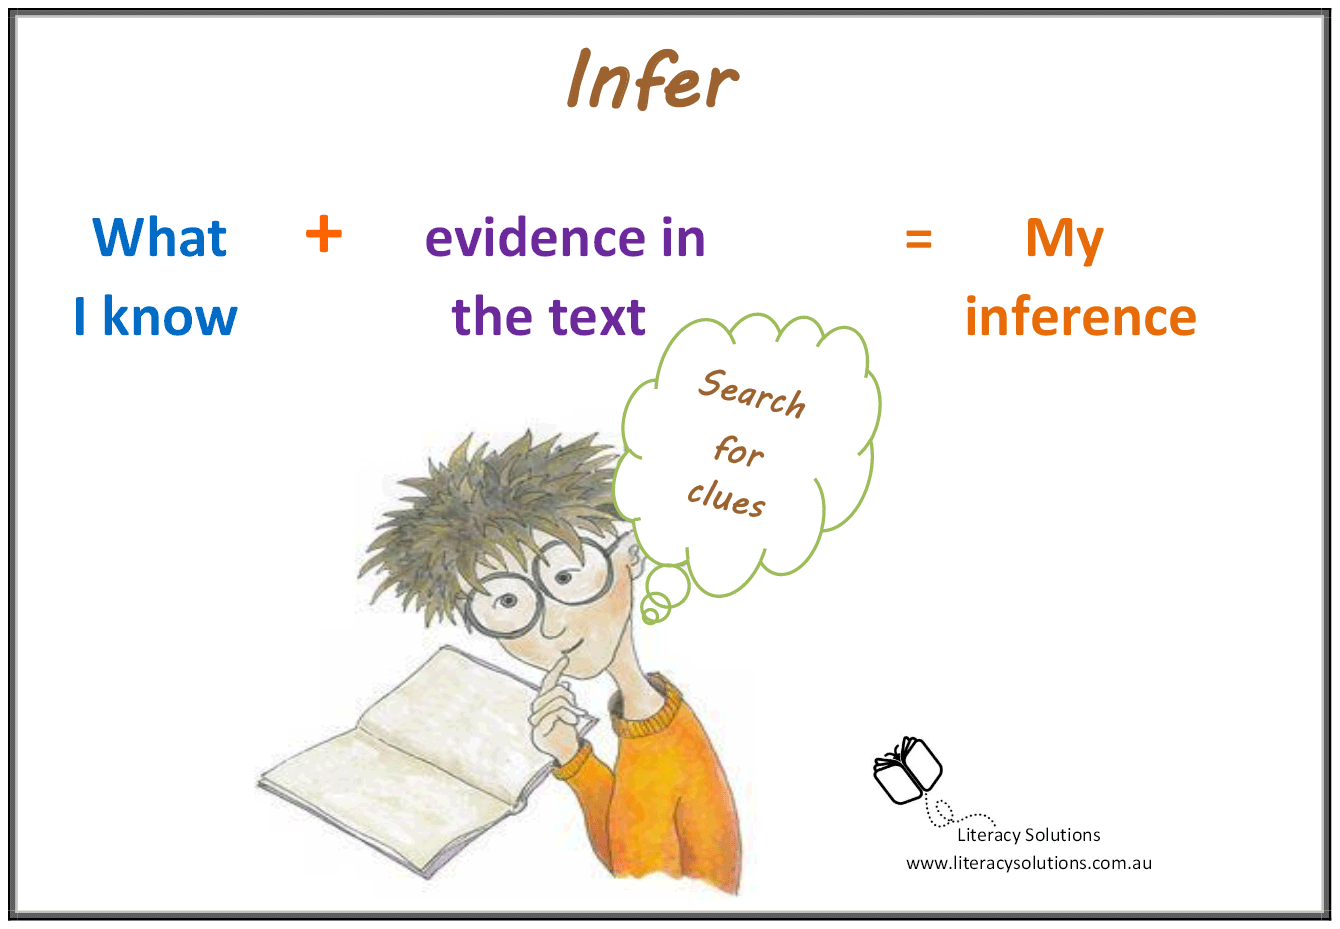 Infer - what I know (mini poster)